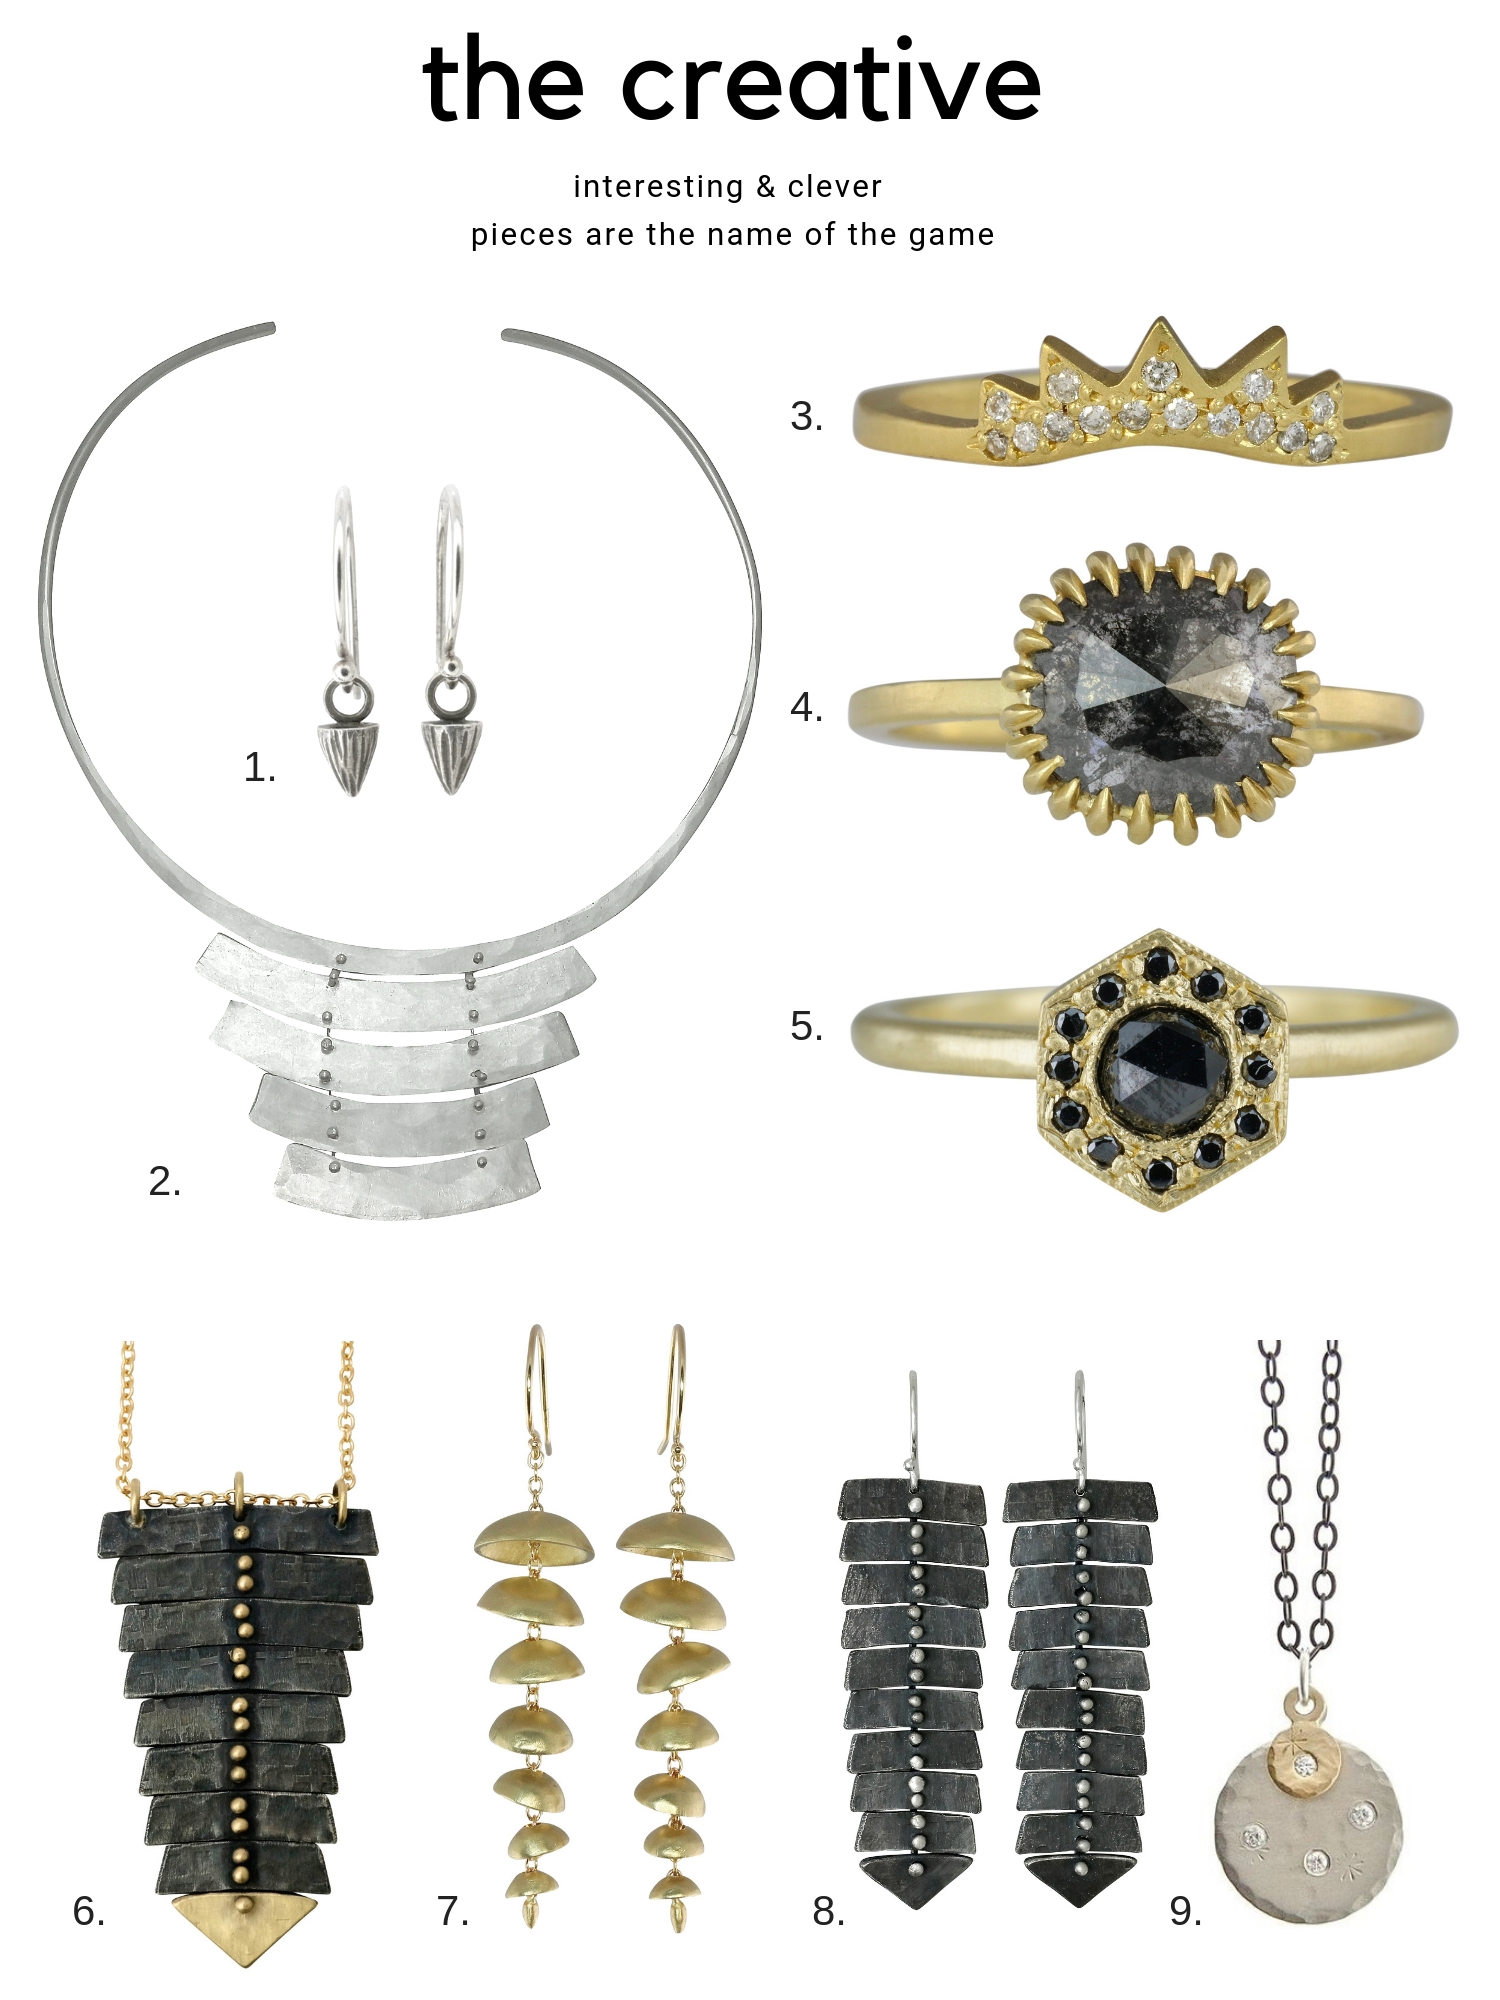 1. Add a bit of edginess to the ears with the  mini mountain dangle earrings . From $90  2. Like a wearable sculpture, the  rustic collar necklace  commands attention. $530  3. The  Ra band  has an edgy sunburst motif covered in diamonds. $1155  4. Our signature soleil style prongs add a unique design element to this  one of a kind diamond rin g. $3600  5. Black diamonds add interest to the otherwise sweet Art Deco inspired  Leona ring . $1295  6. The classic fishbone single necklace takes on a decidedly dark & luxe feel with our  two-tone version , From $475  7. THE modern statement earring. The  large chime earrings  have all kinds of fun movement and are comfortable too. From $395  8. These  slim XL fishbone earrings  in oxidized silver are a conversation starter. $345  9. Not sure if she wears silver or gold? The  double treasure coin necklac e is a perfect medley of mixed metals. $345